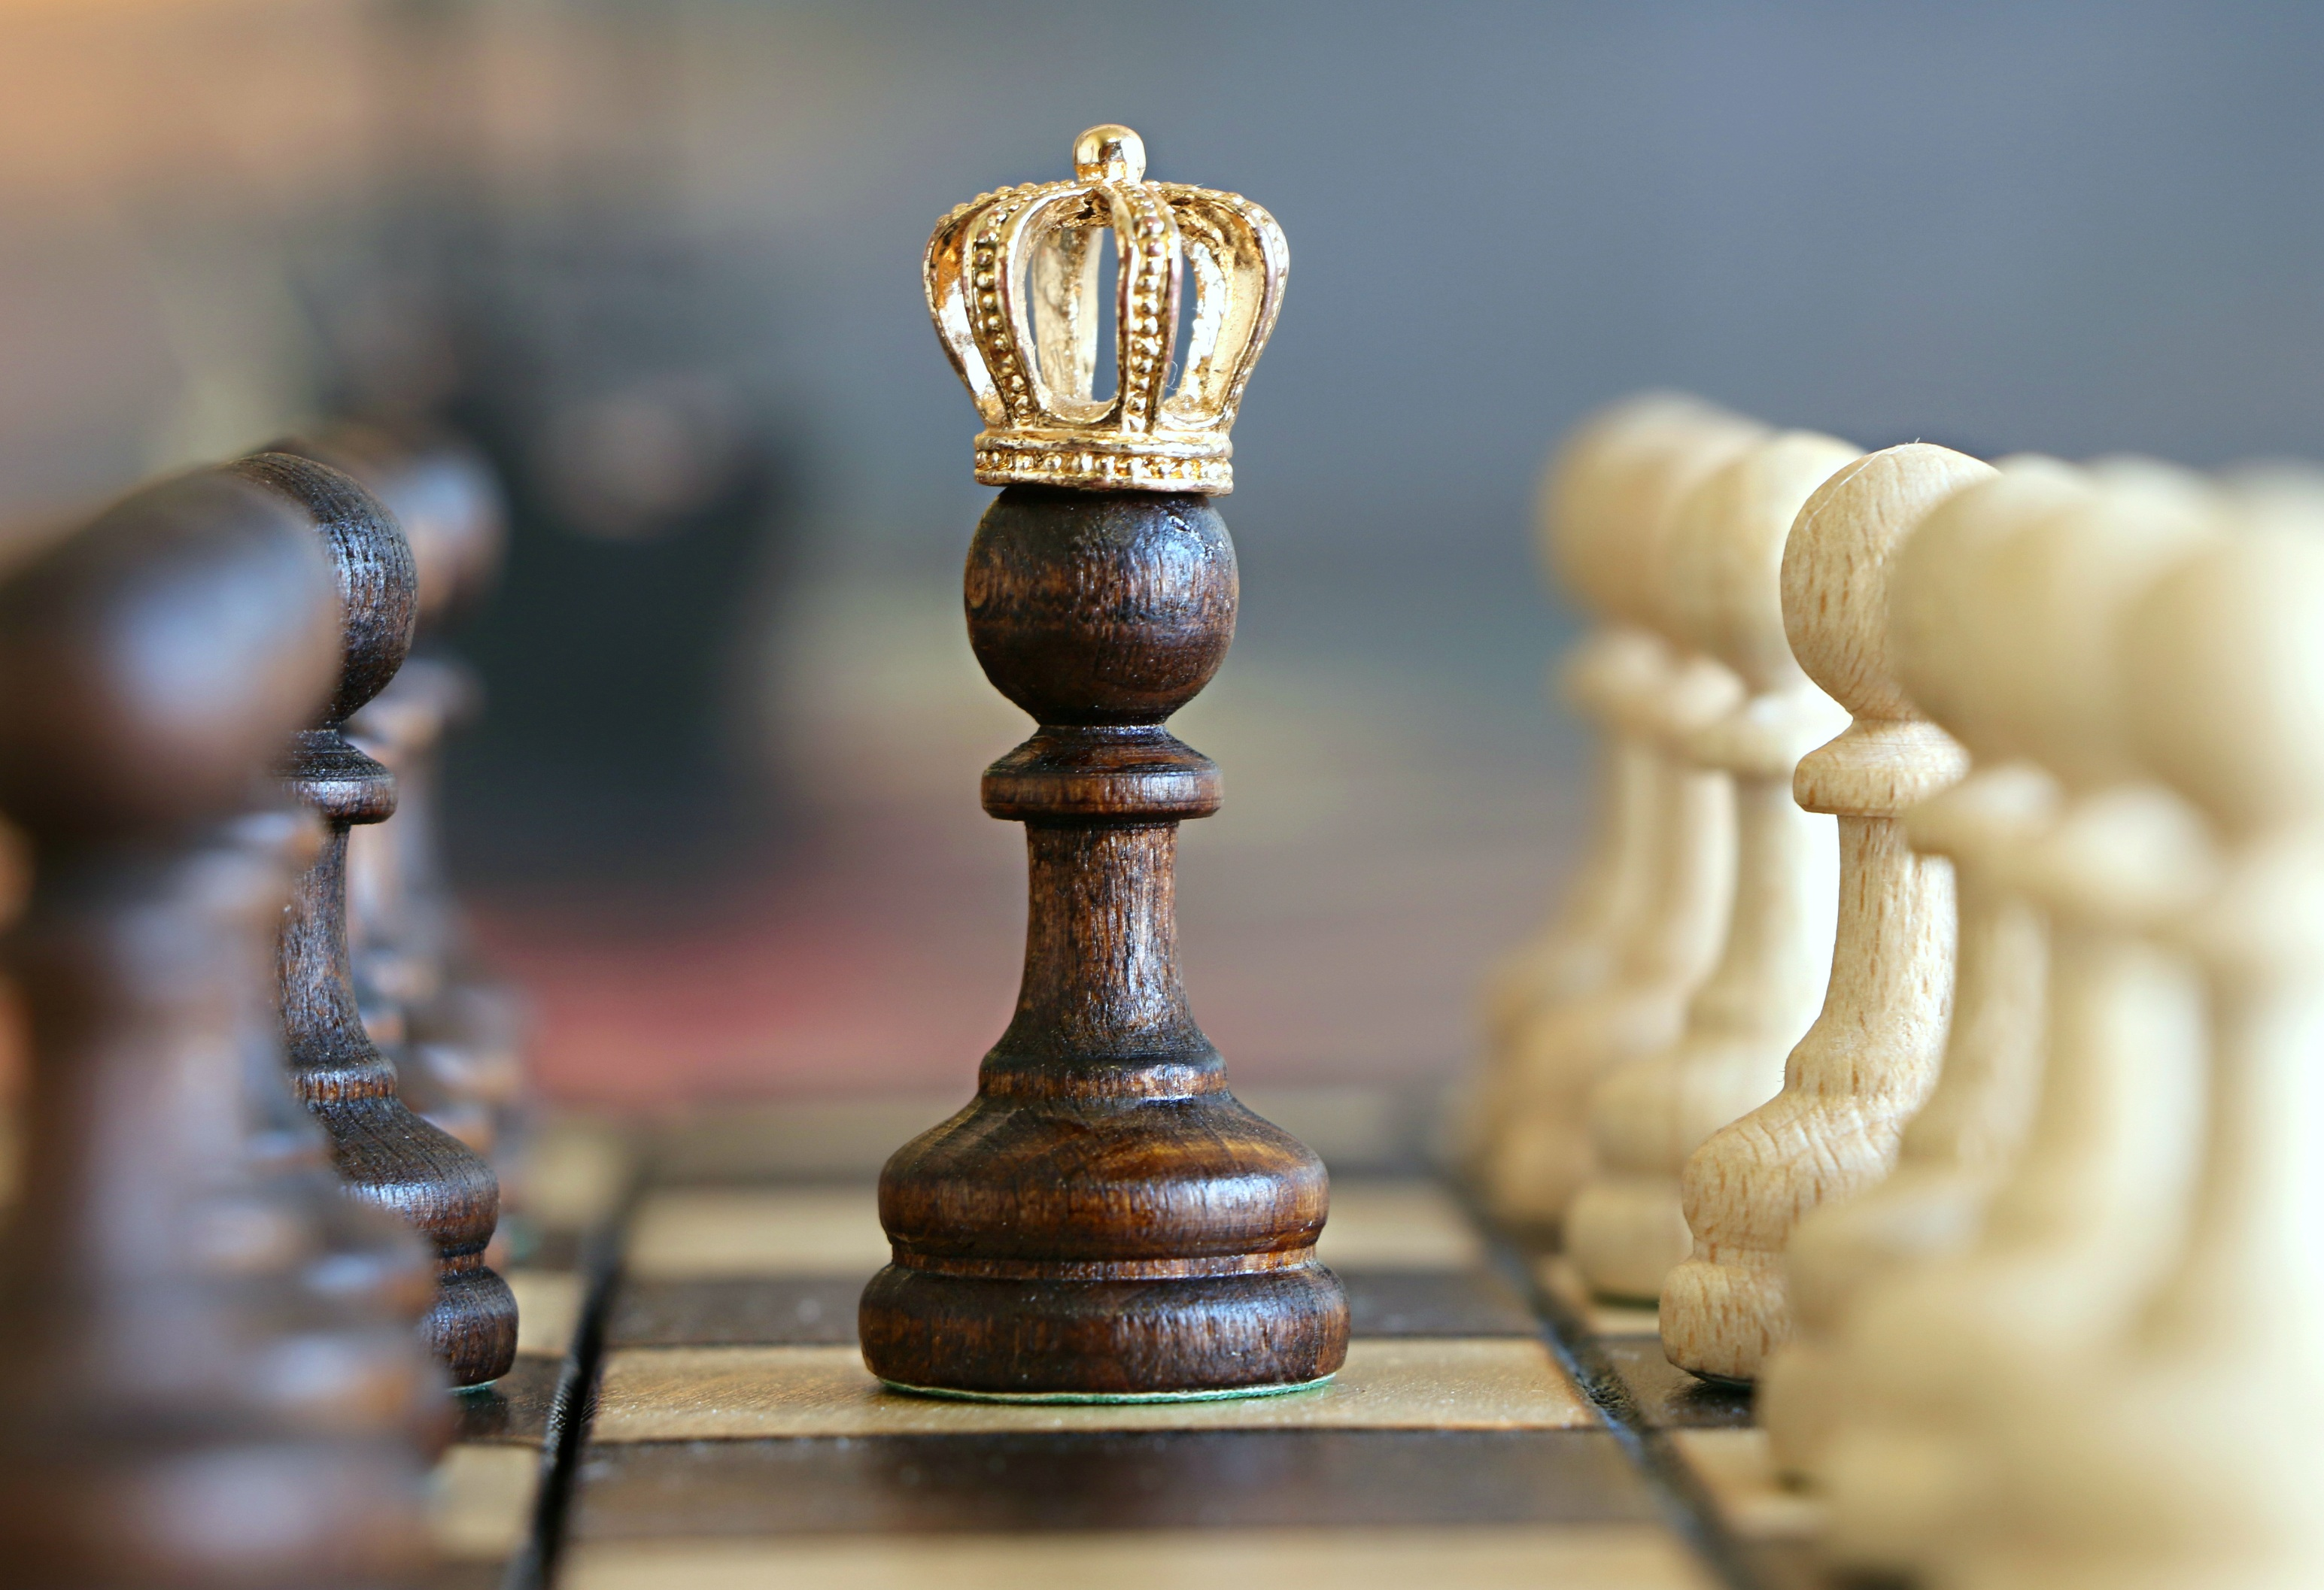 king chess piece with crown